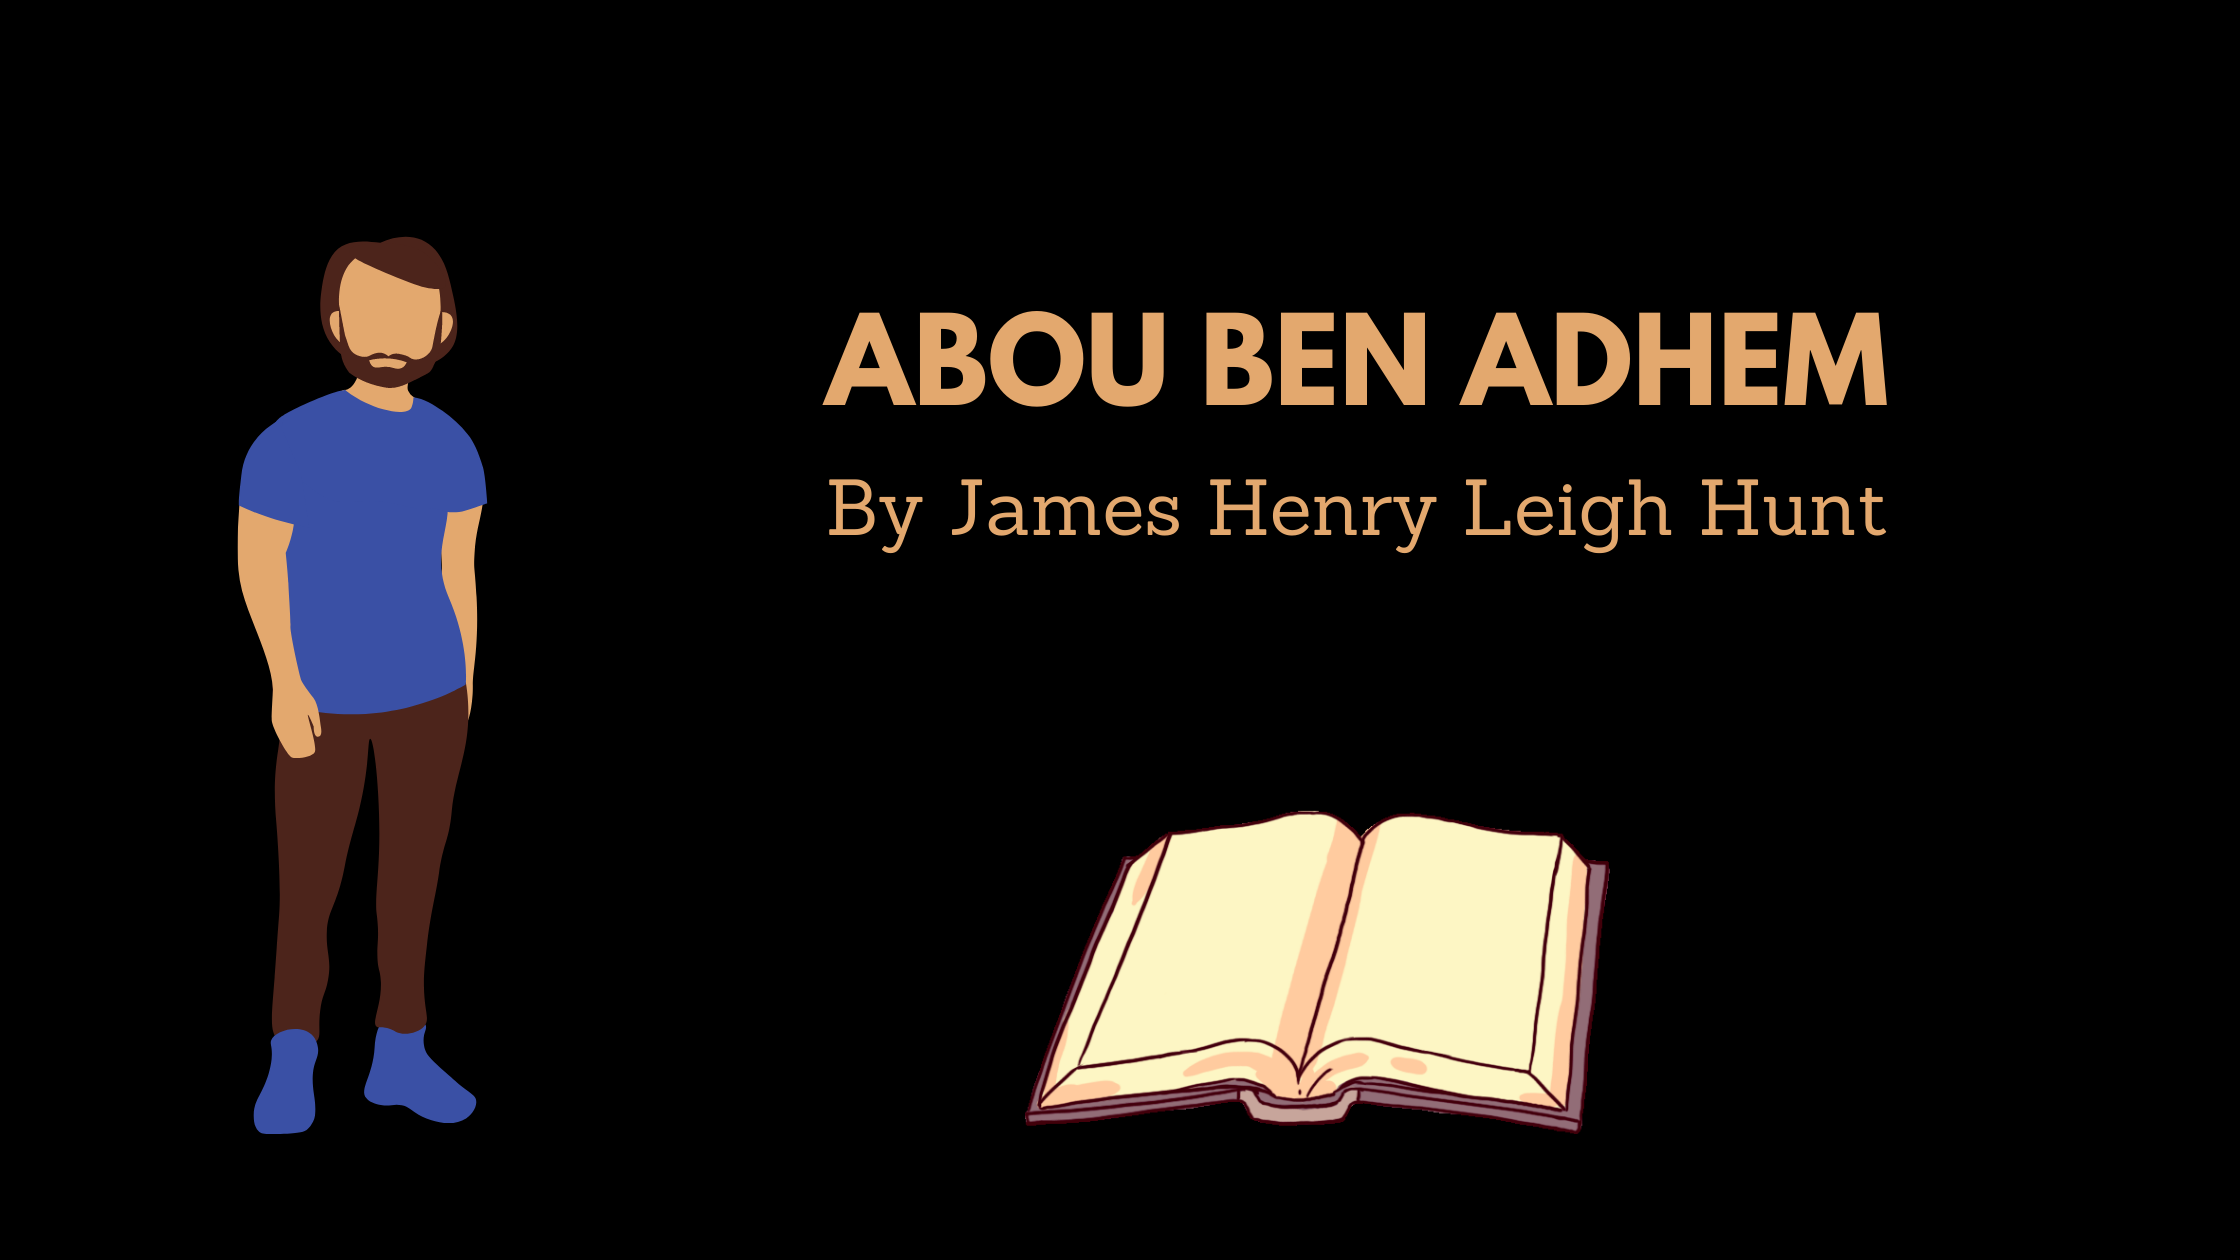 Abou Ben Adhem by James Henry Leigh Hunt